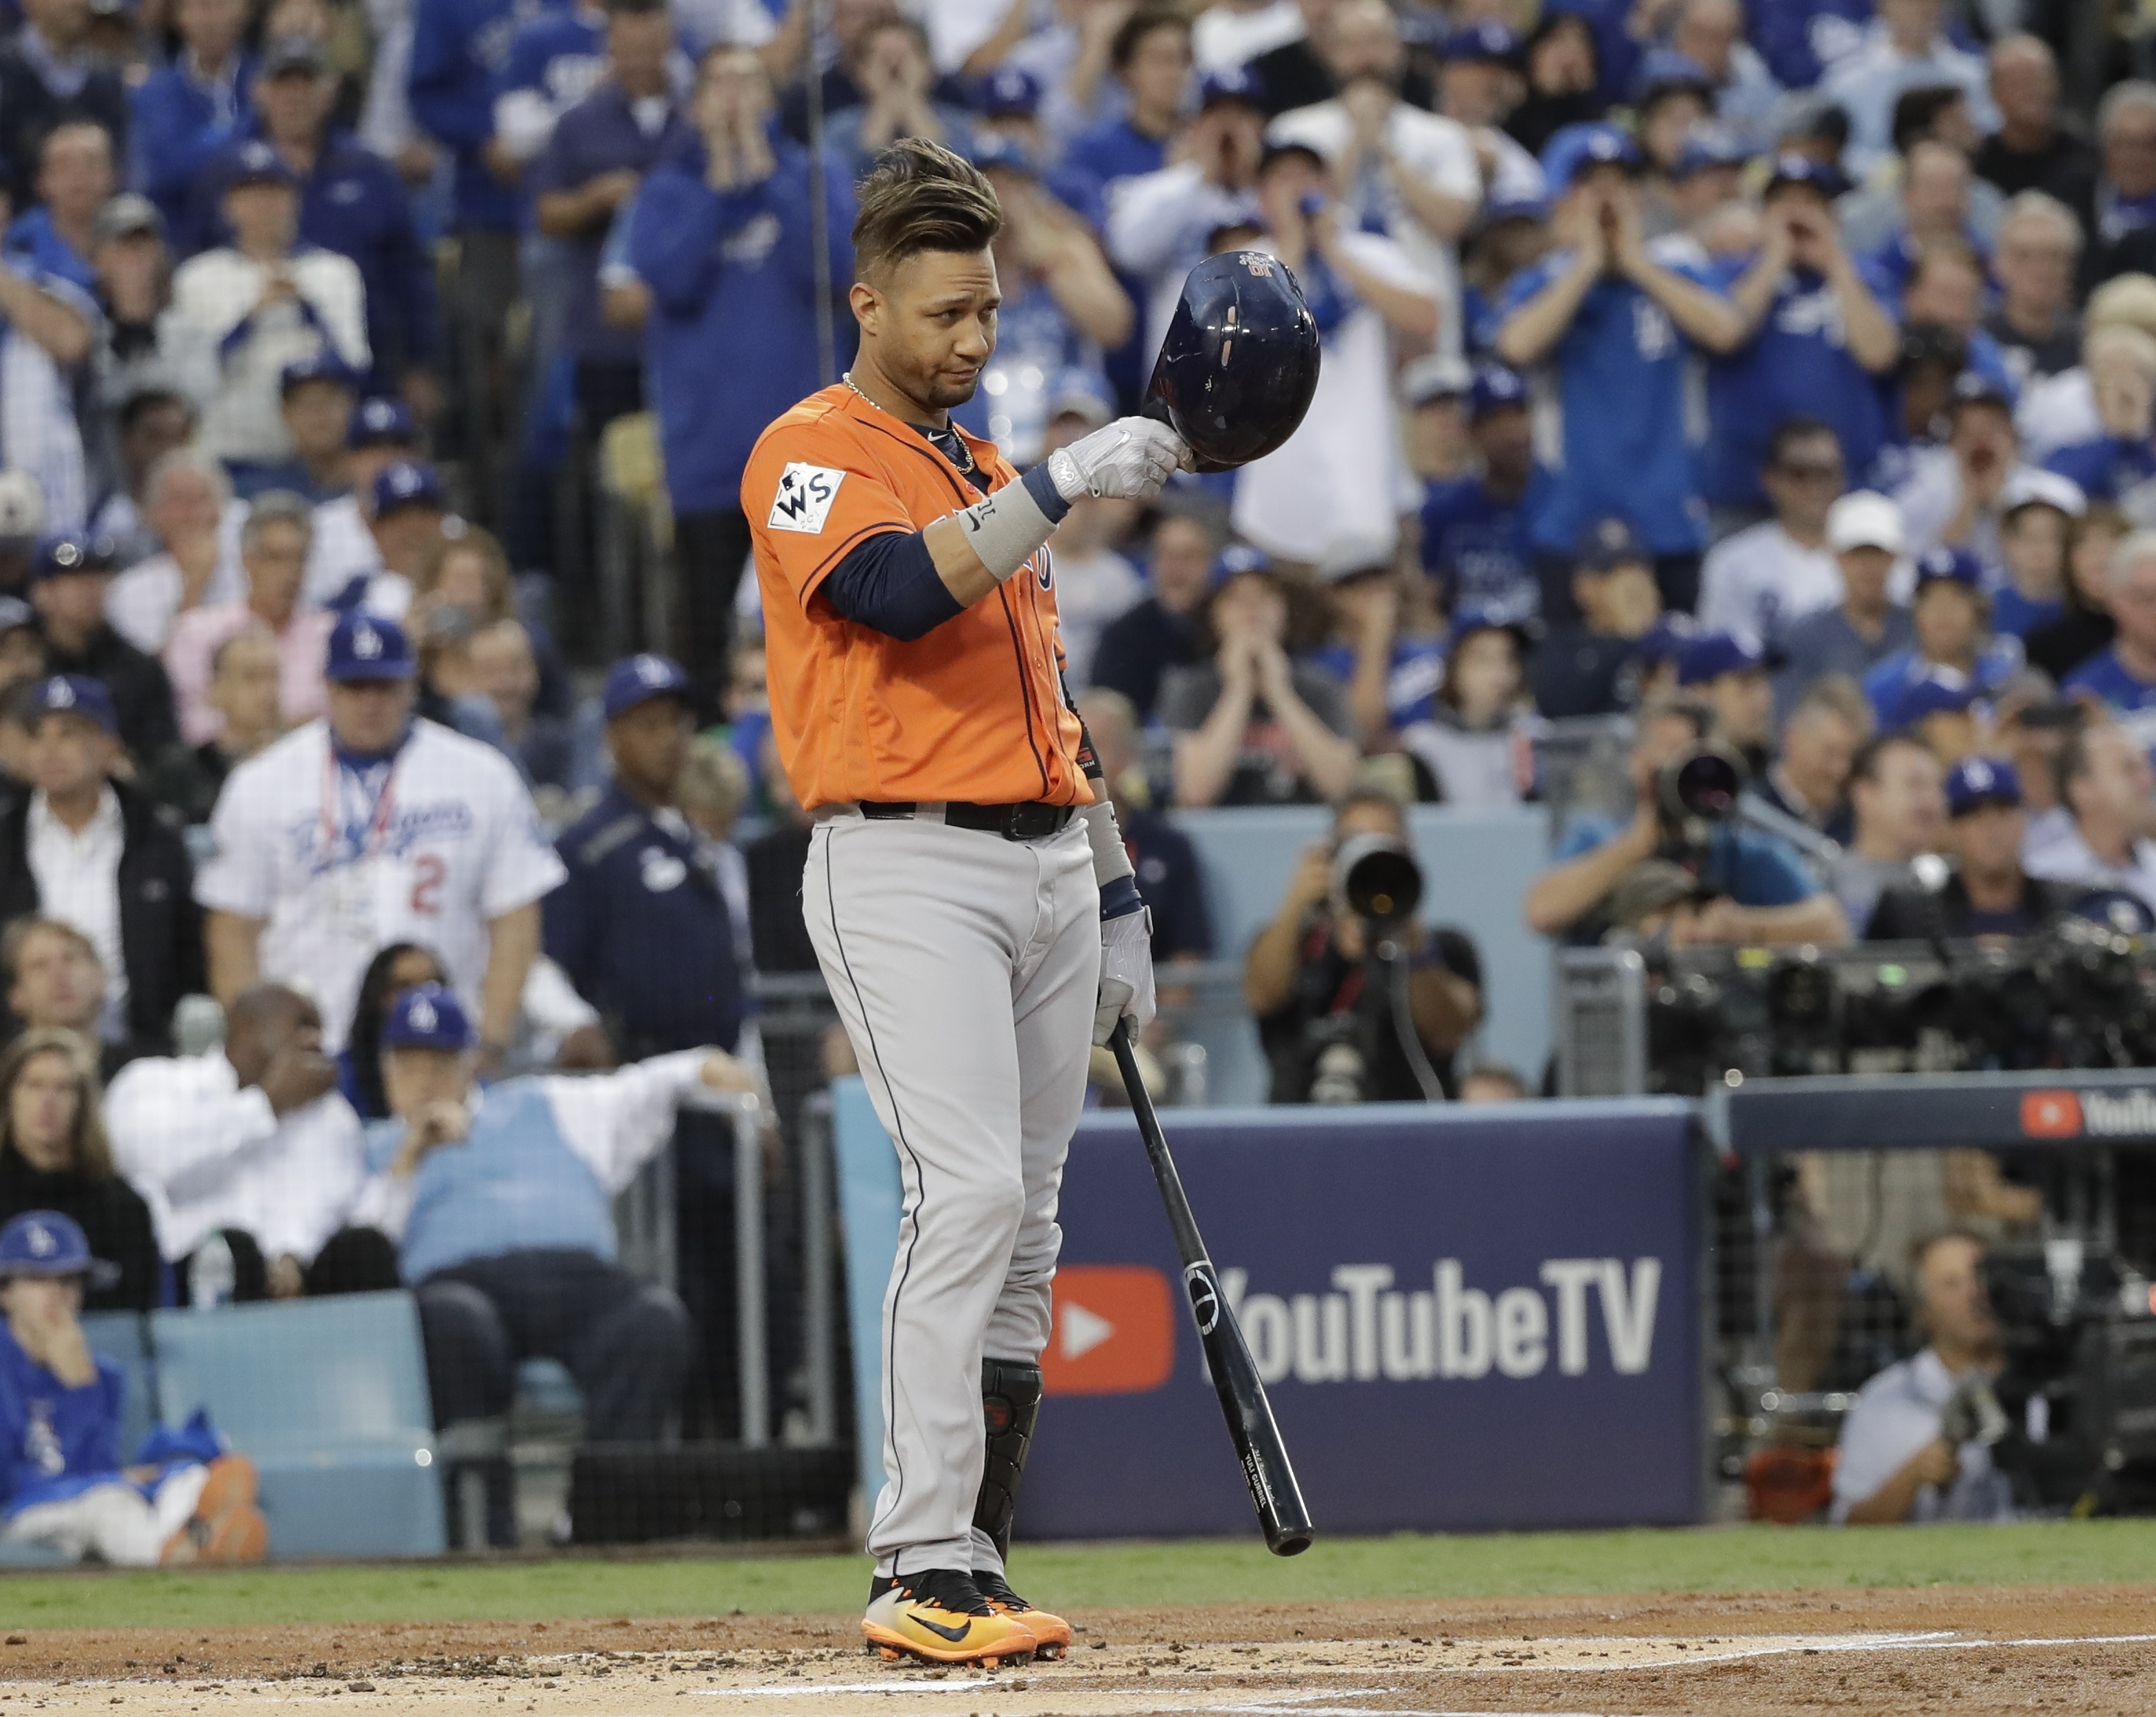 "<div class=""meta image-caption""><div class=""origin-logo origin-image ap""><span>AP</span></div><span class=""caption-text"">Houston Astros' Yuli Gurriel tips his hat as he gestures to Los Angeles Dodgers starting pitcher Yu Darvish during the first inning of Game 7. (AP Photo/David J. Phillip) (AP)</span></div>"